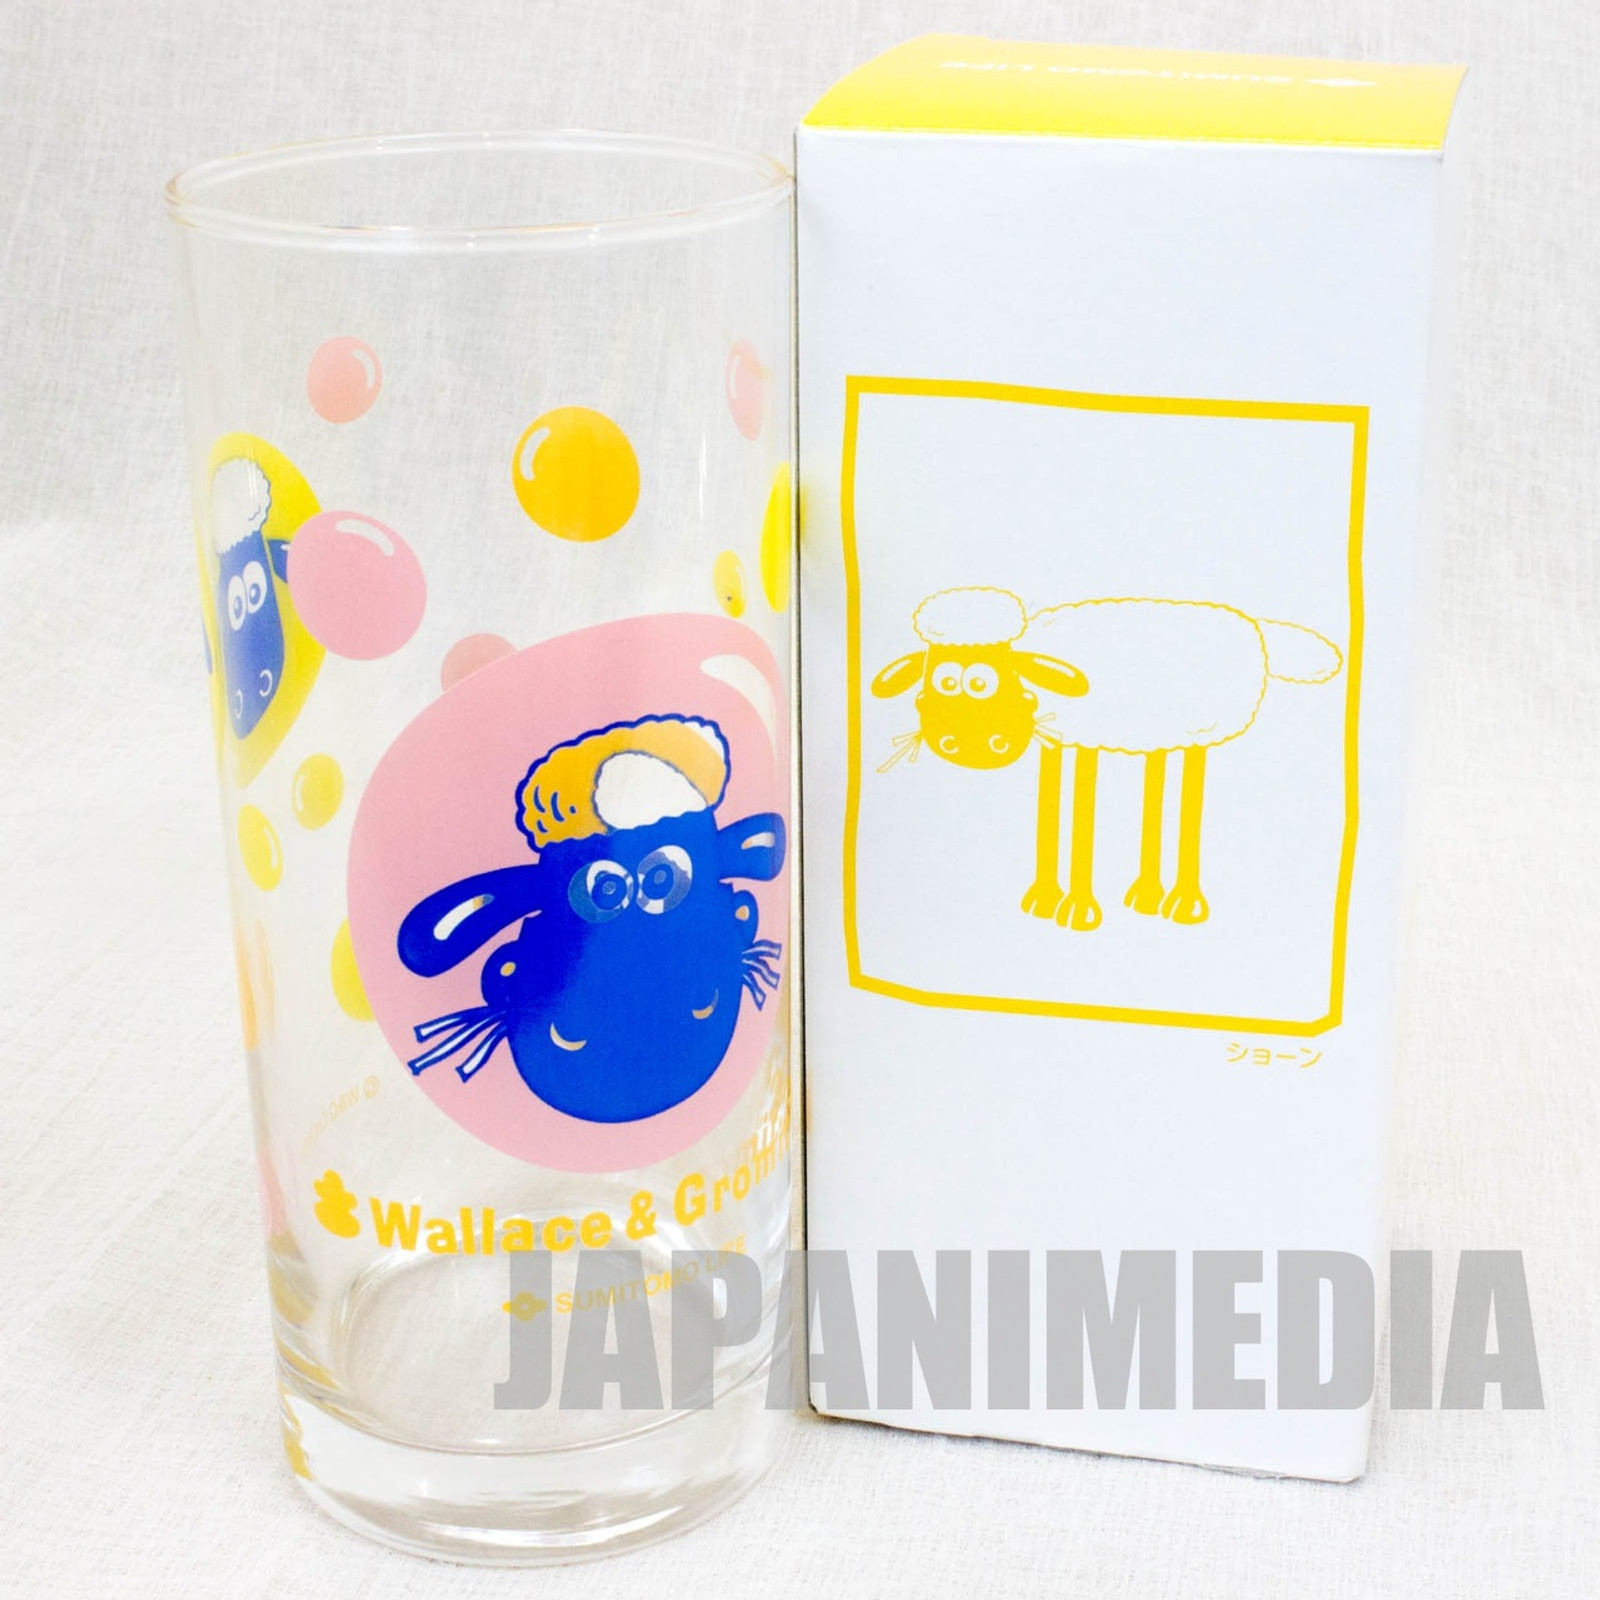 Wallace & Gromit Glass Yellow ver. Sumitomo Life Novelty JAPAN Ardman ANIME